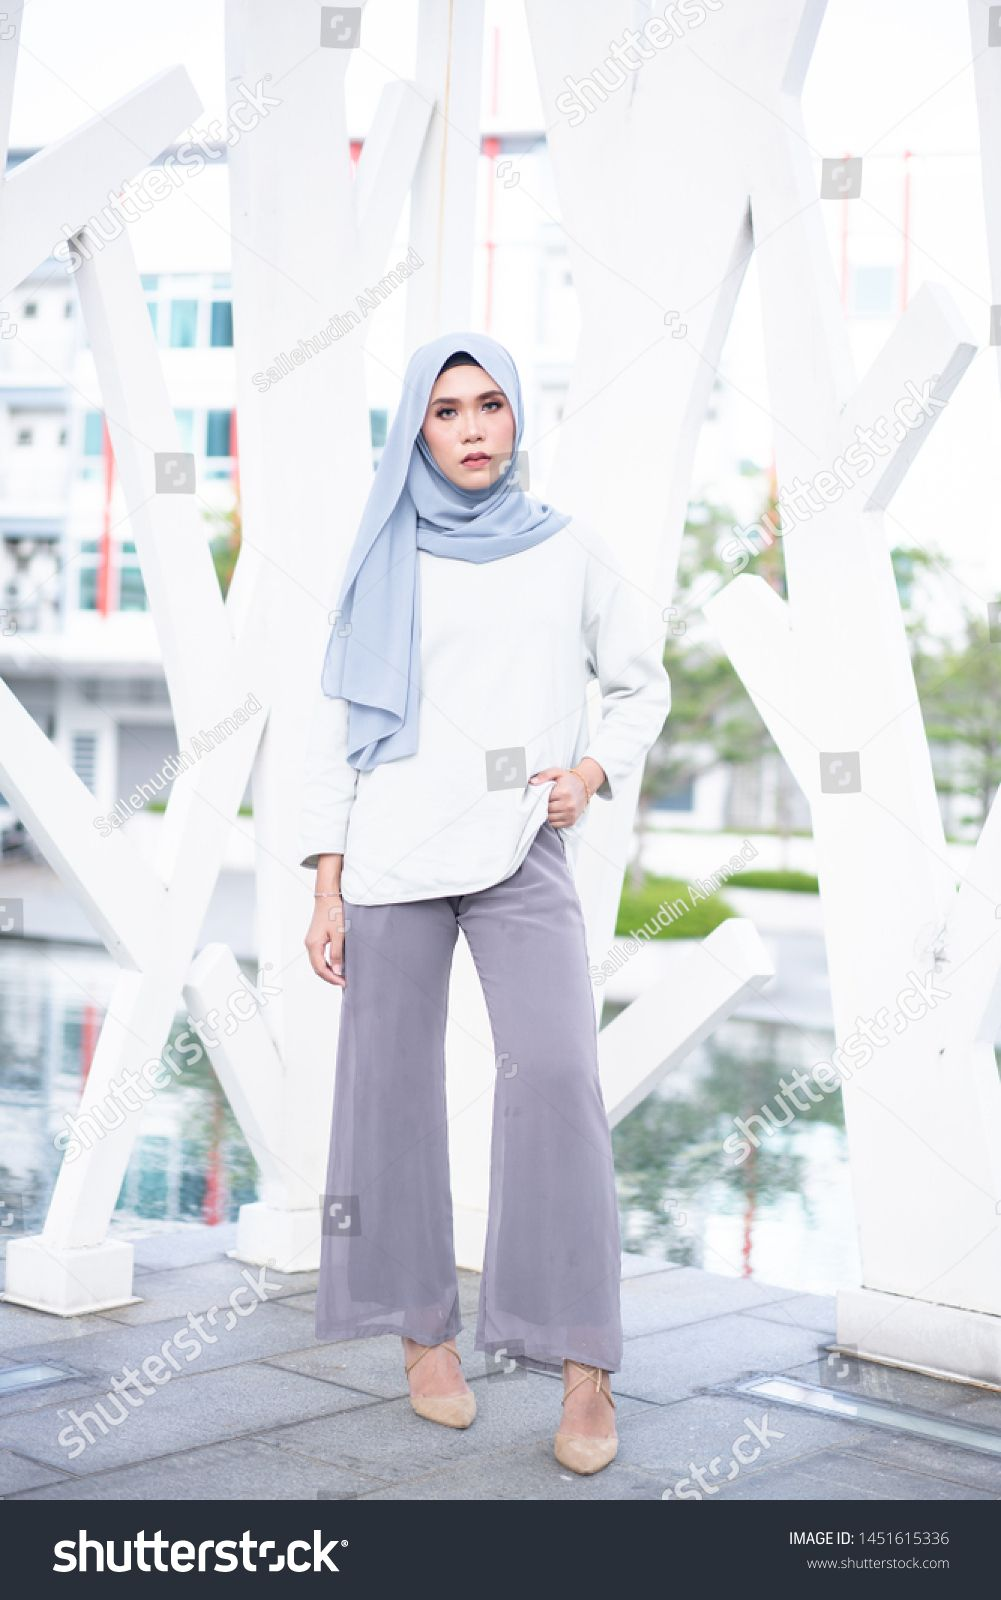 Beautiful Young Model In Fashionable Hijab Style Posing In Urban Environments Stylish Muslim Hijab Fashion In 2020 Fashion Lifestyle Styled Stock Images Young Models